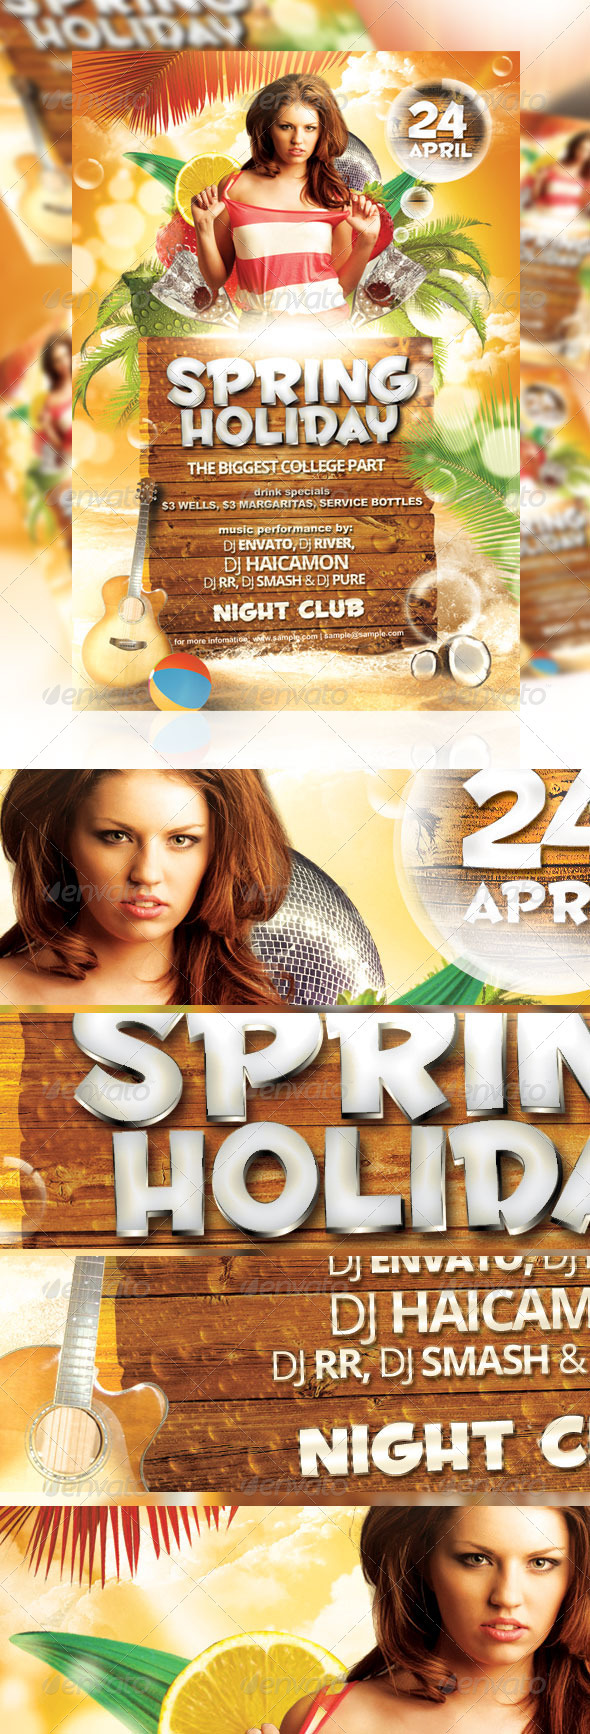 Spring Holiday Party Flyer - Events Flyers